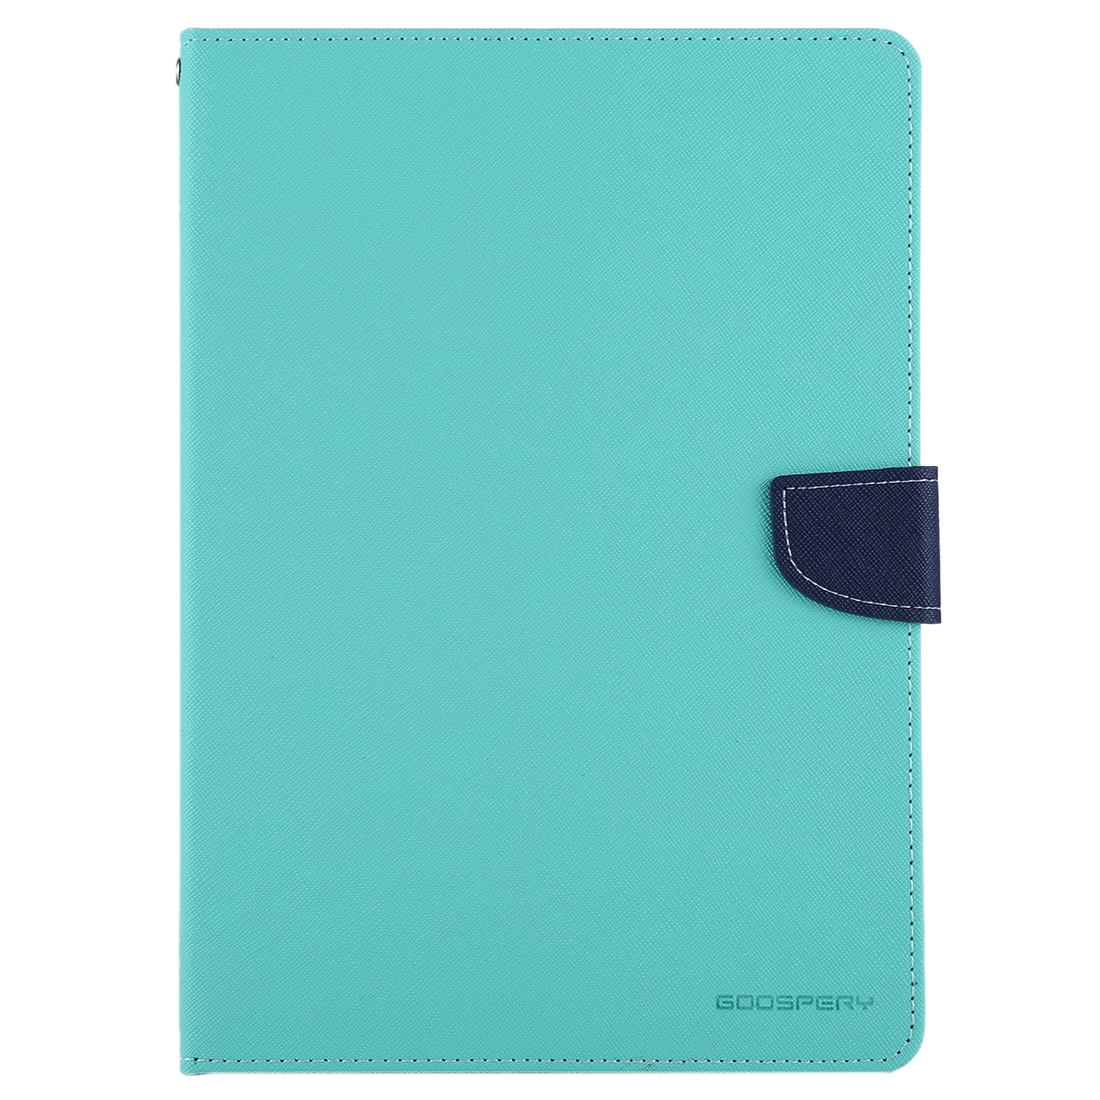 iPad Air Case Cross Texture Leather Case With A Slim Profile (Mint Green)